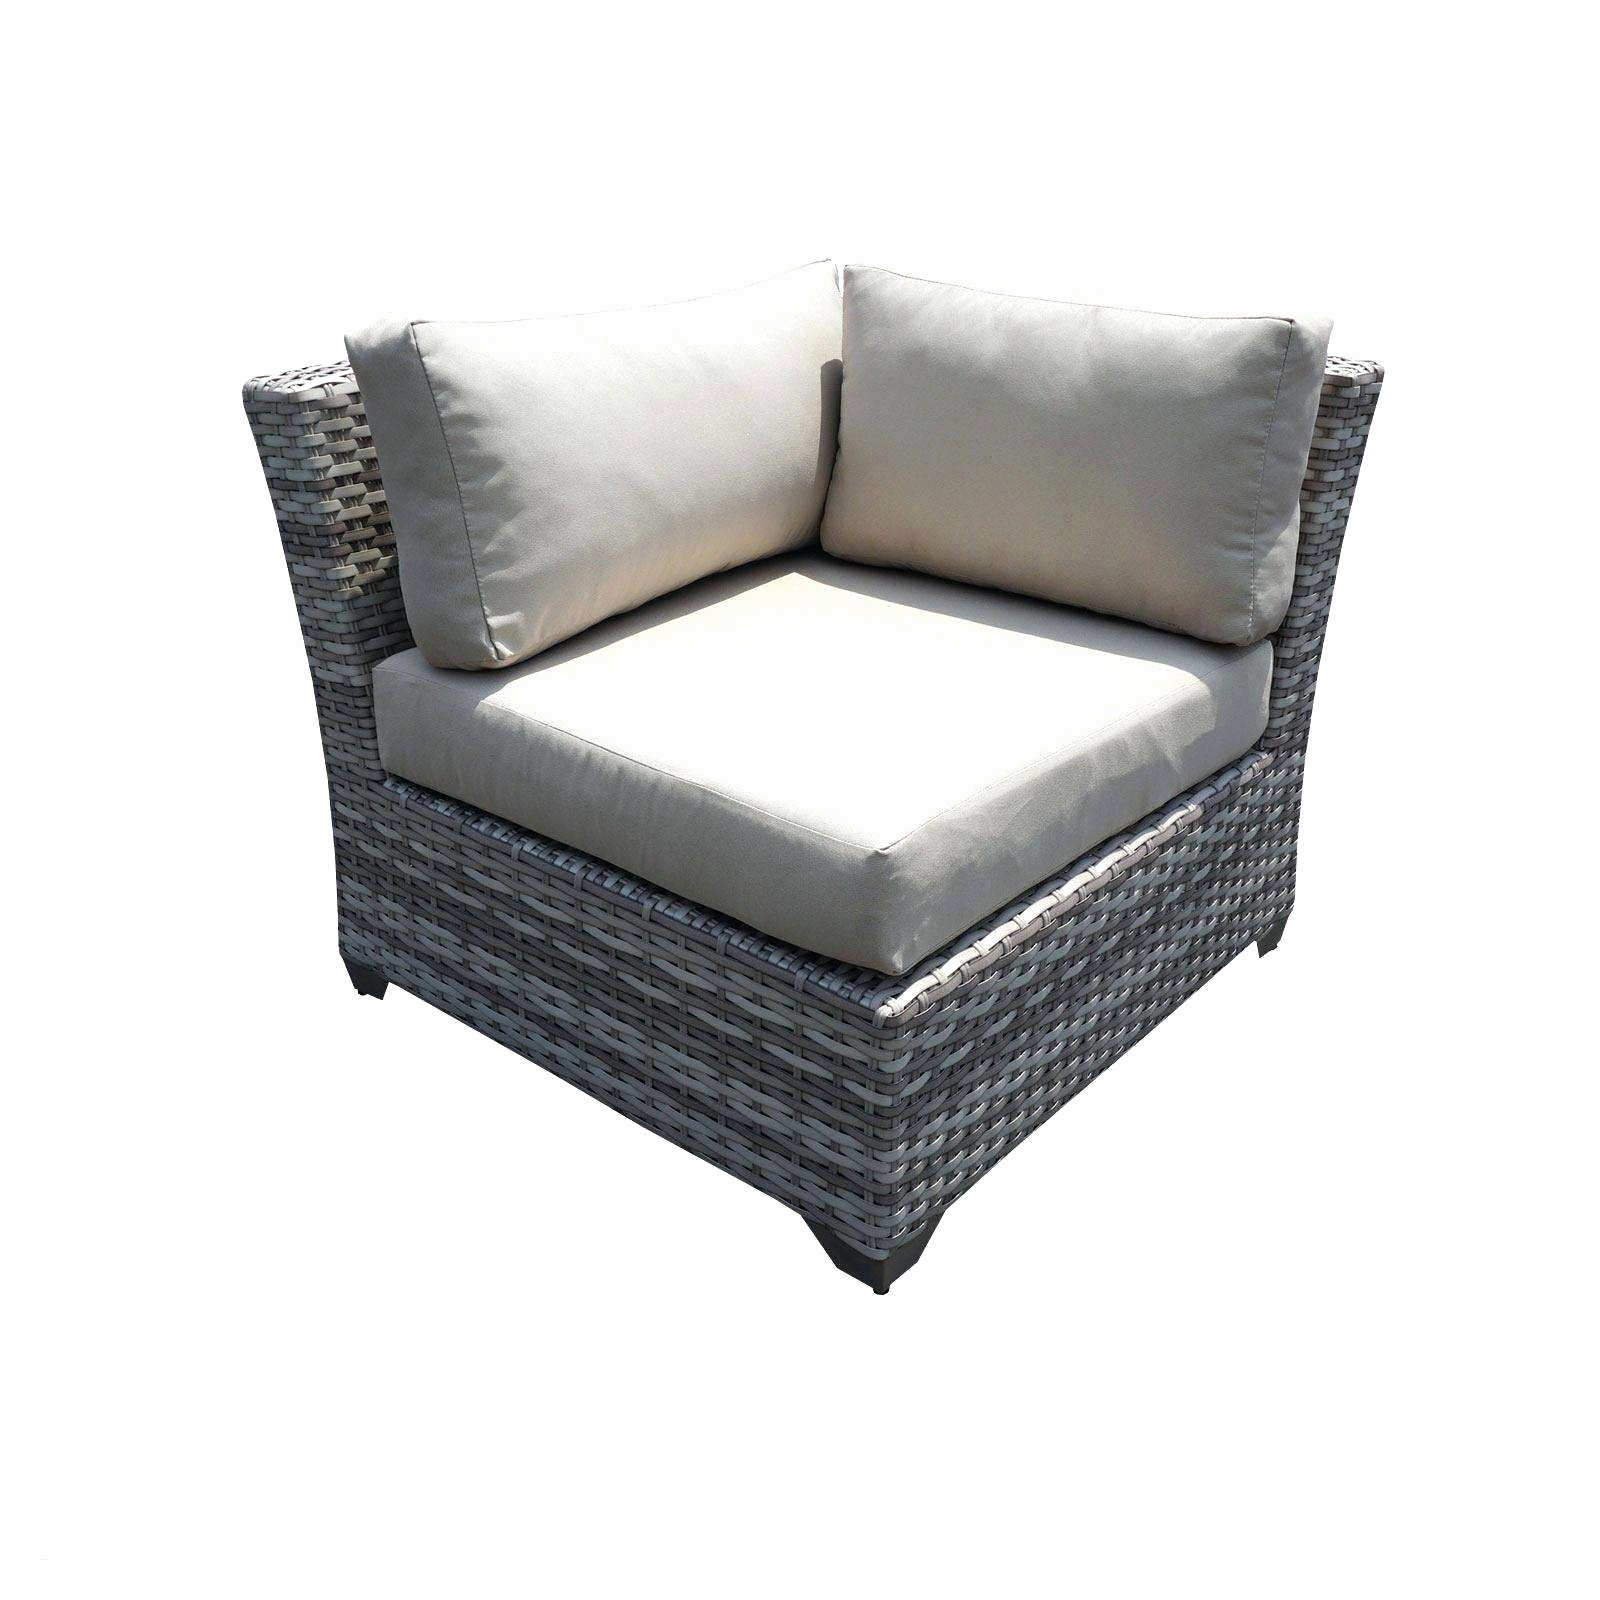 Simple 25 2 Piece Sectionals With Chaise Awesome | Russiandesignshow within Aquarius Light Grey 2 Piece Sectionals With Laf Chaise (Image 27 of 30)